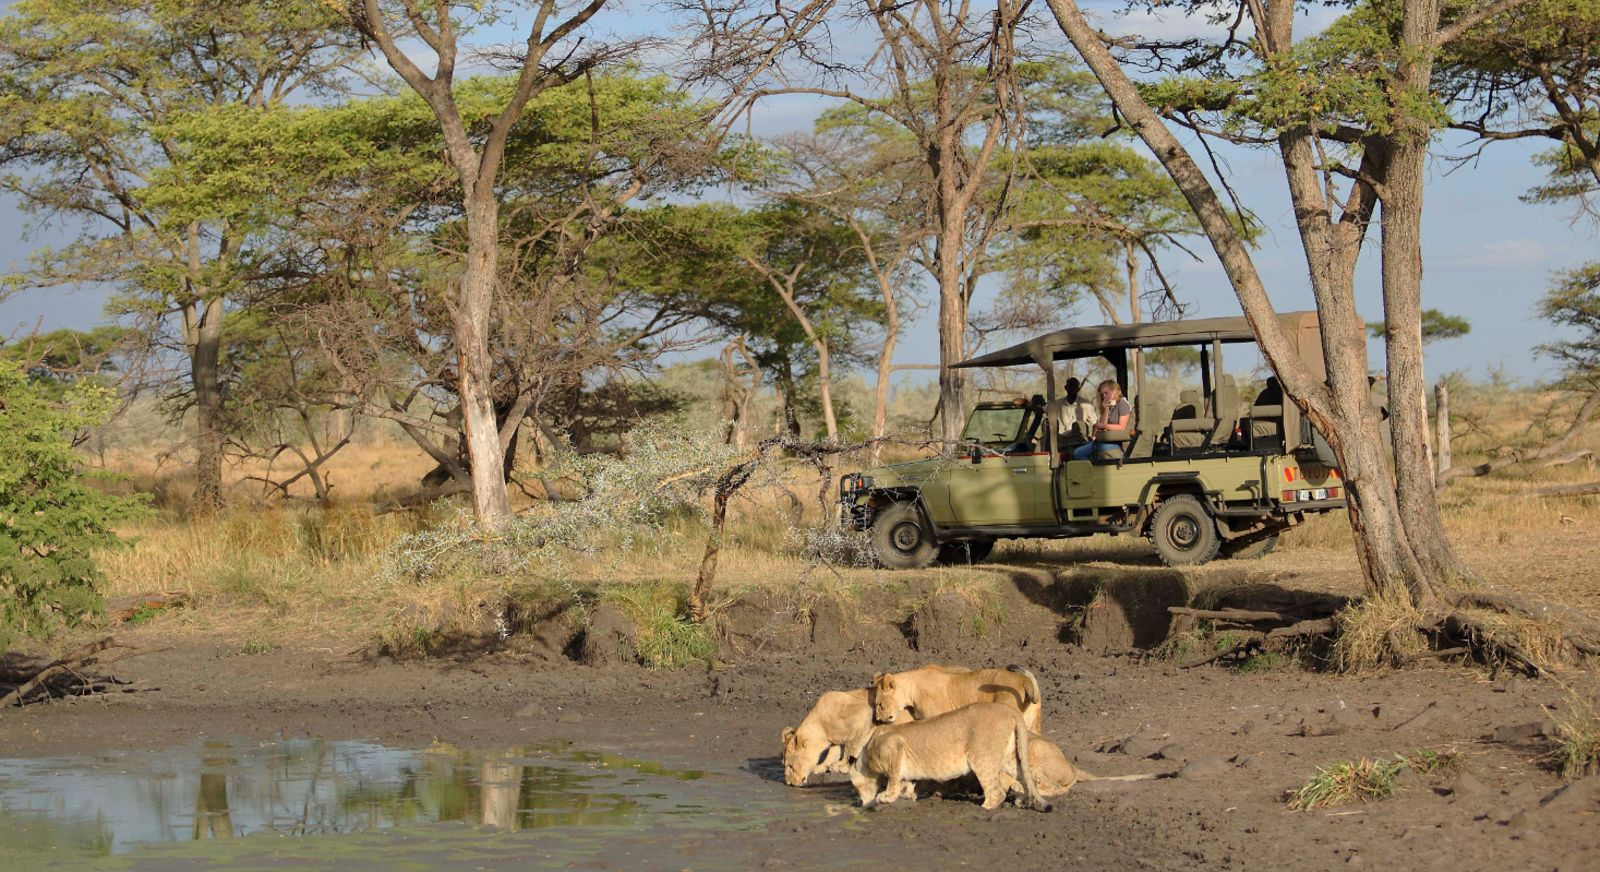 Meet Simba and friends on a 'Lion King' inspired African Safari